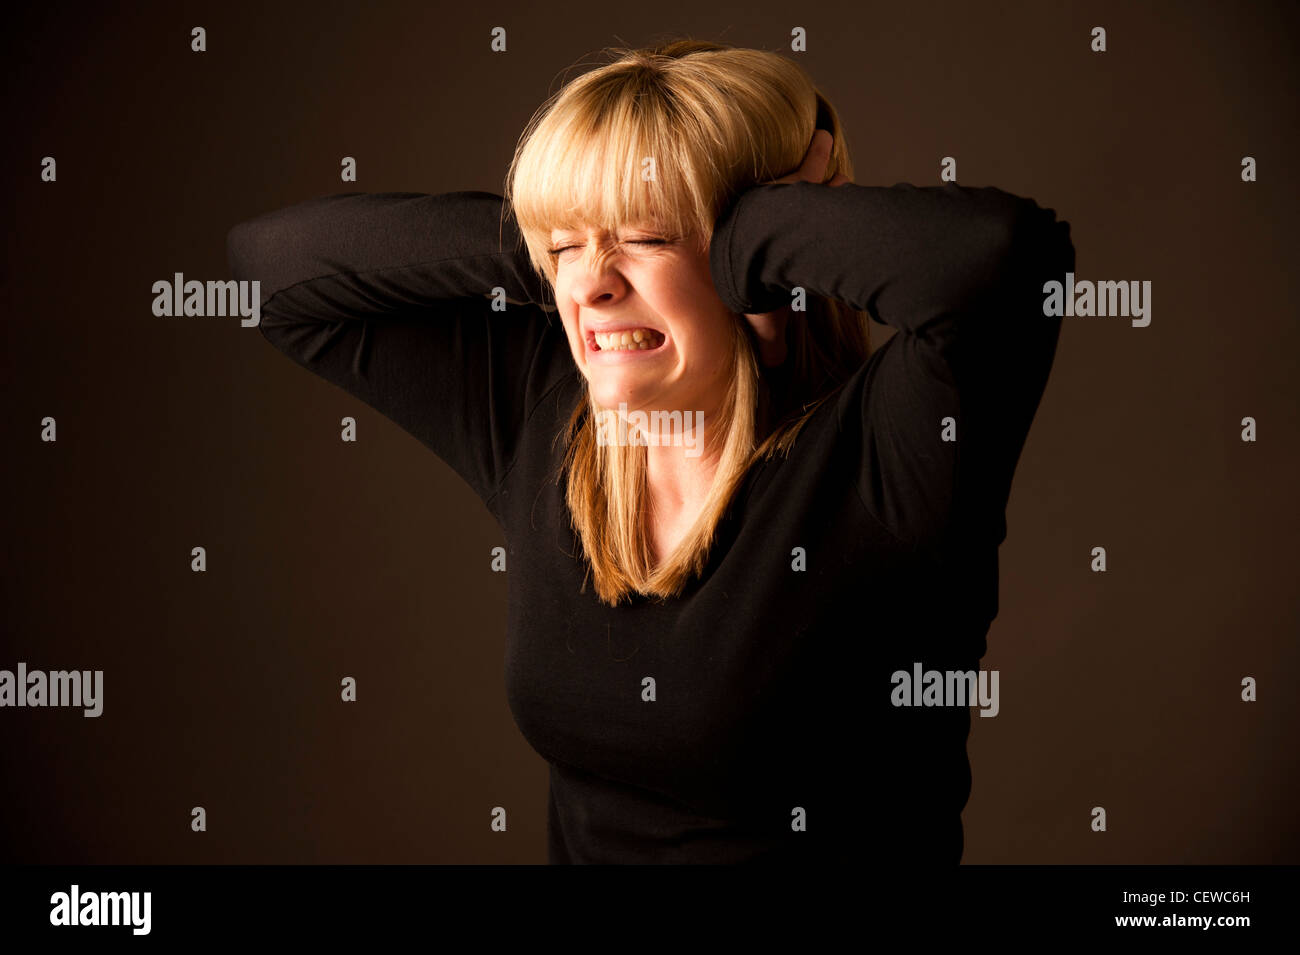 a blonde haired girl woman with her hands over her ears, keeping out the sound - Stock Image